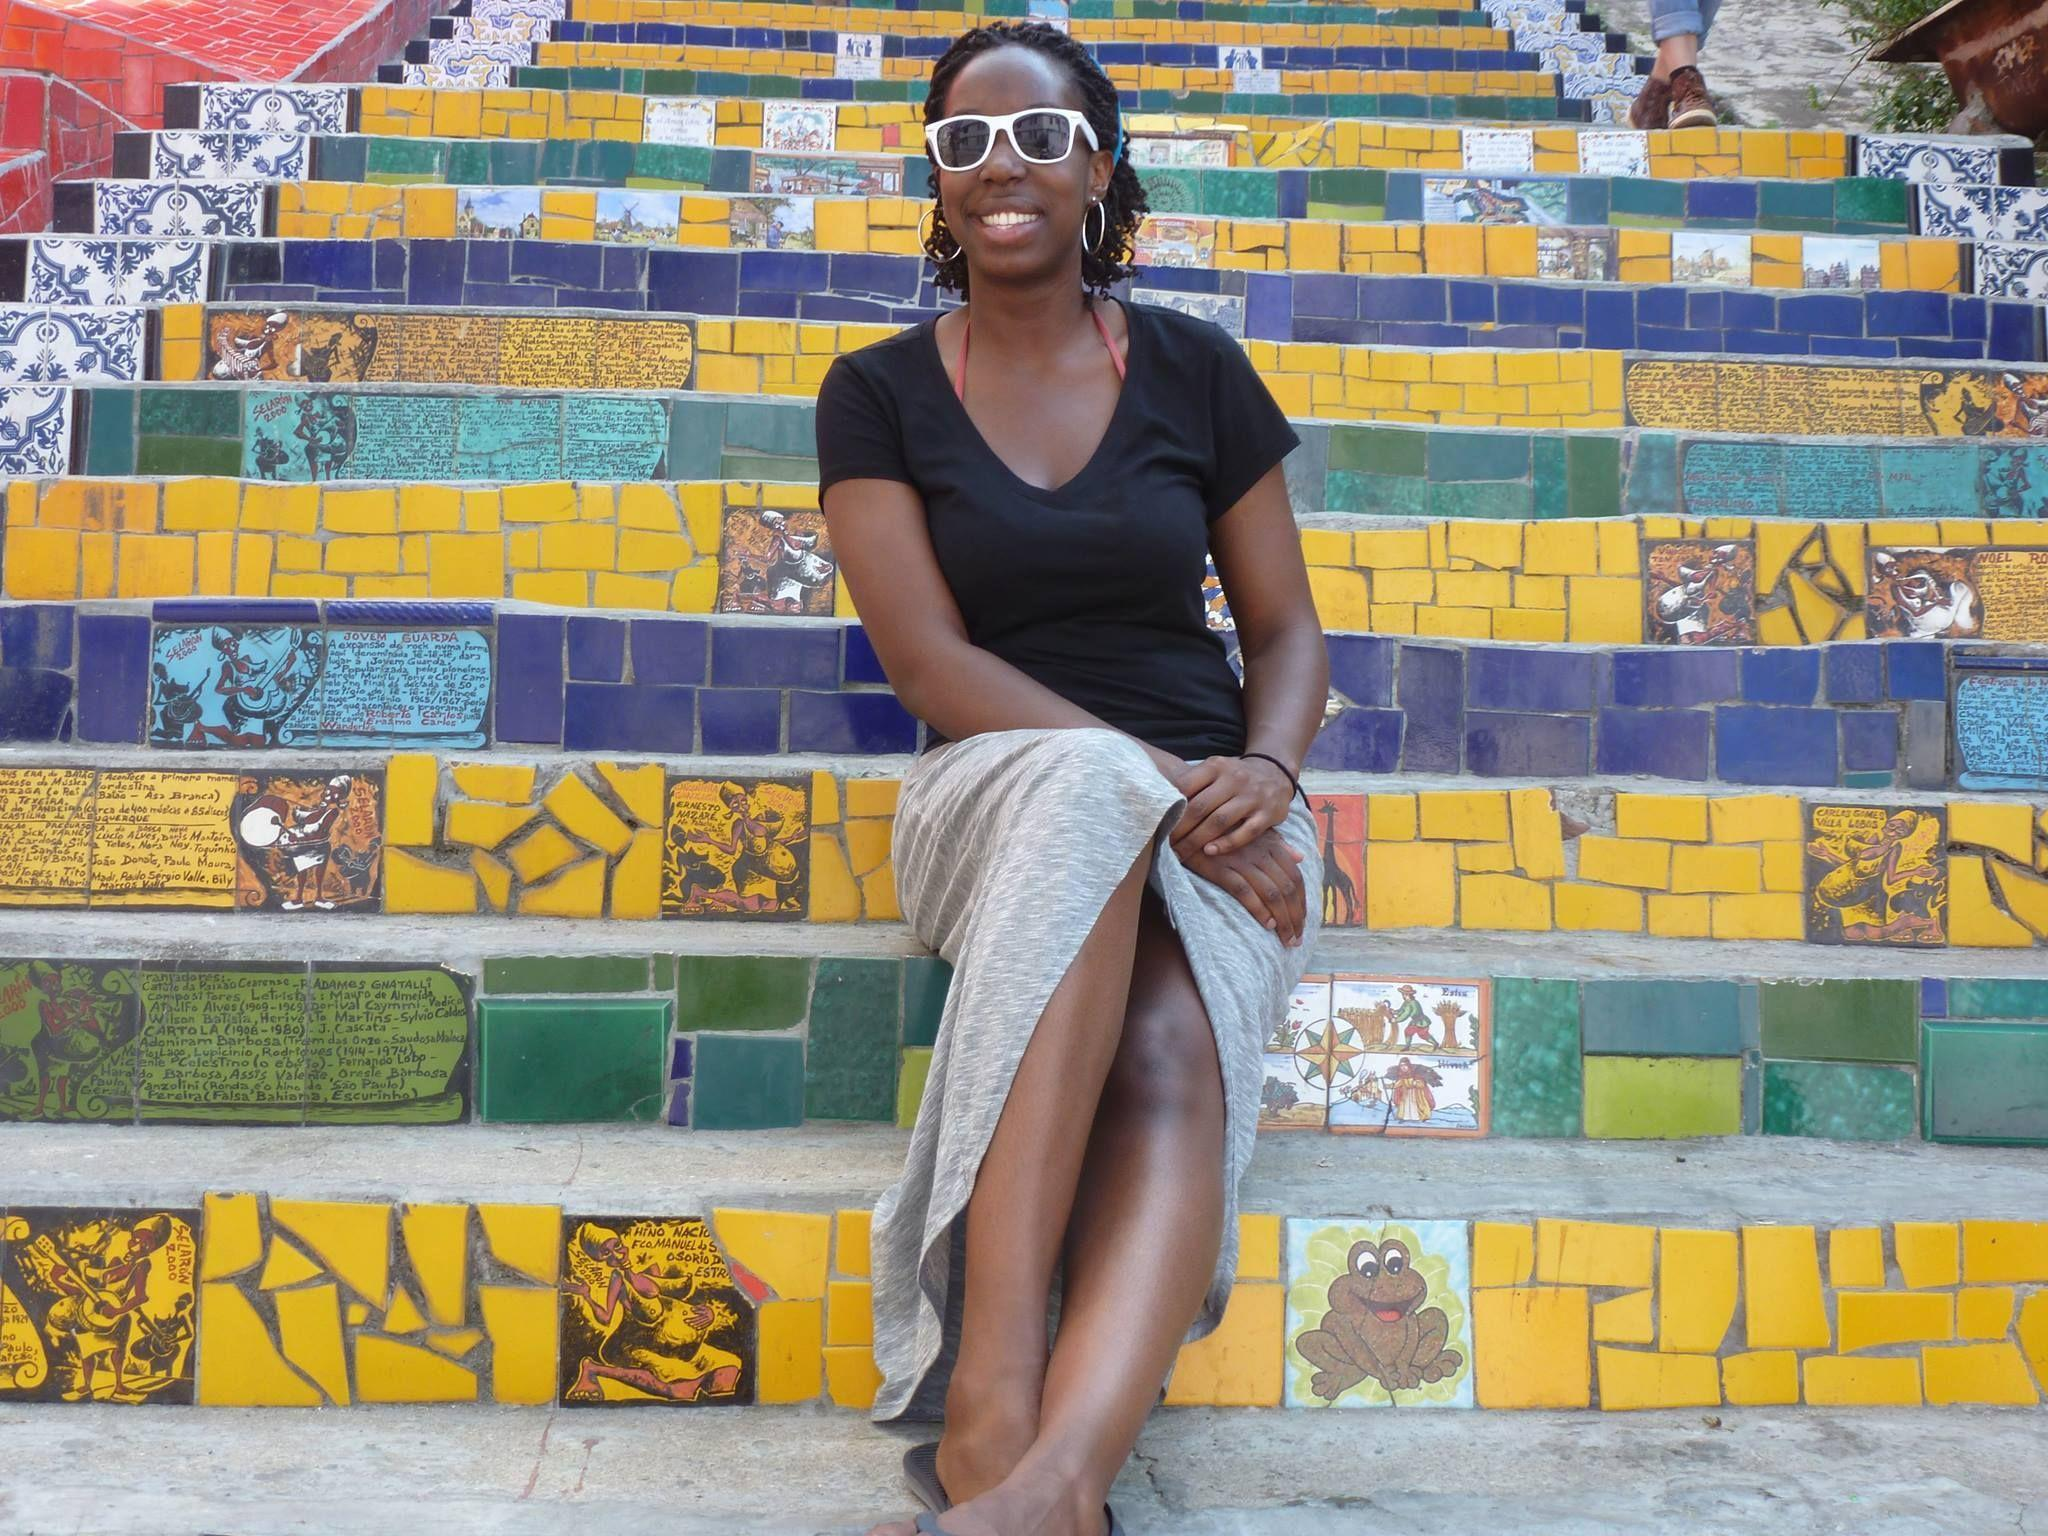 sunnyvale black singles In a group there's no pressure, you can relax and be yourself enjoy 30-50 great events each month from casual hangout to active adventure and world travel.